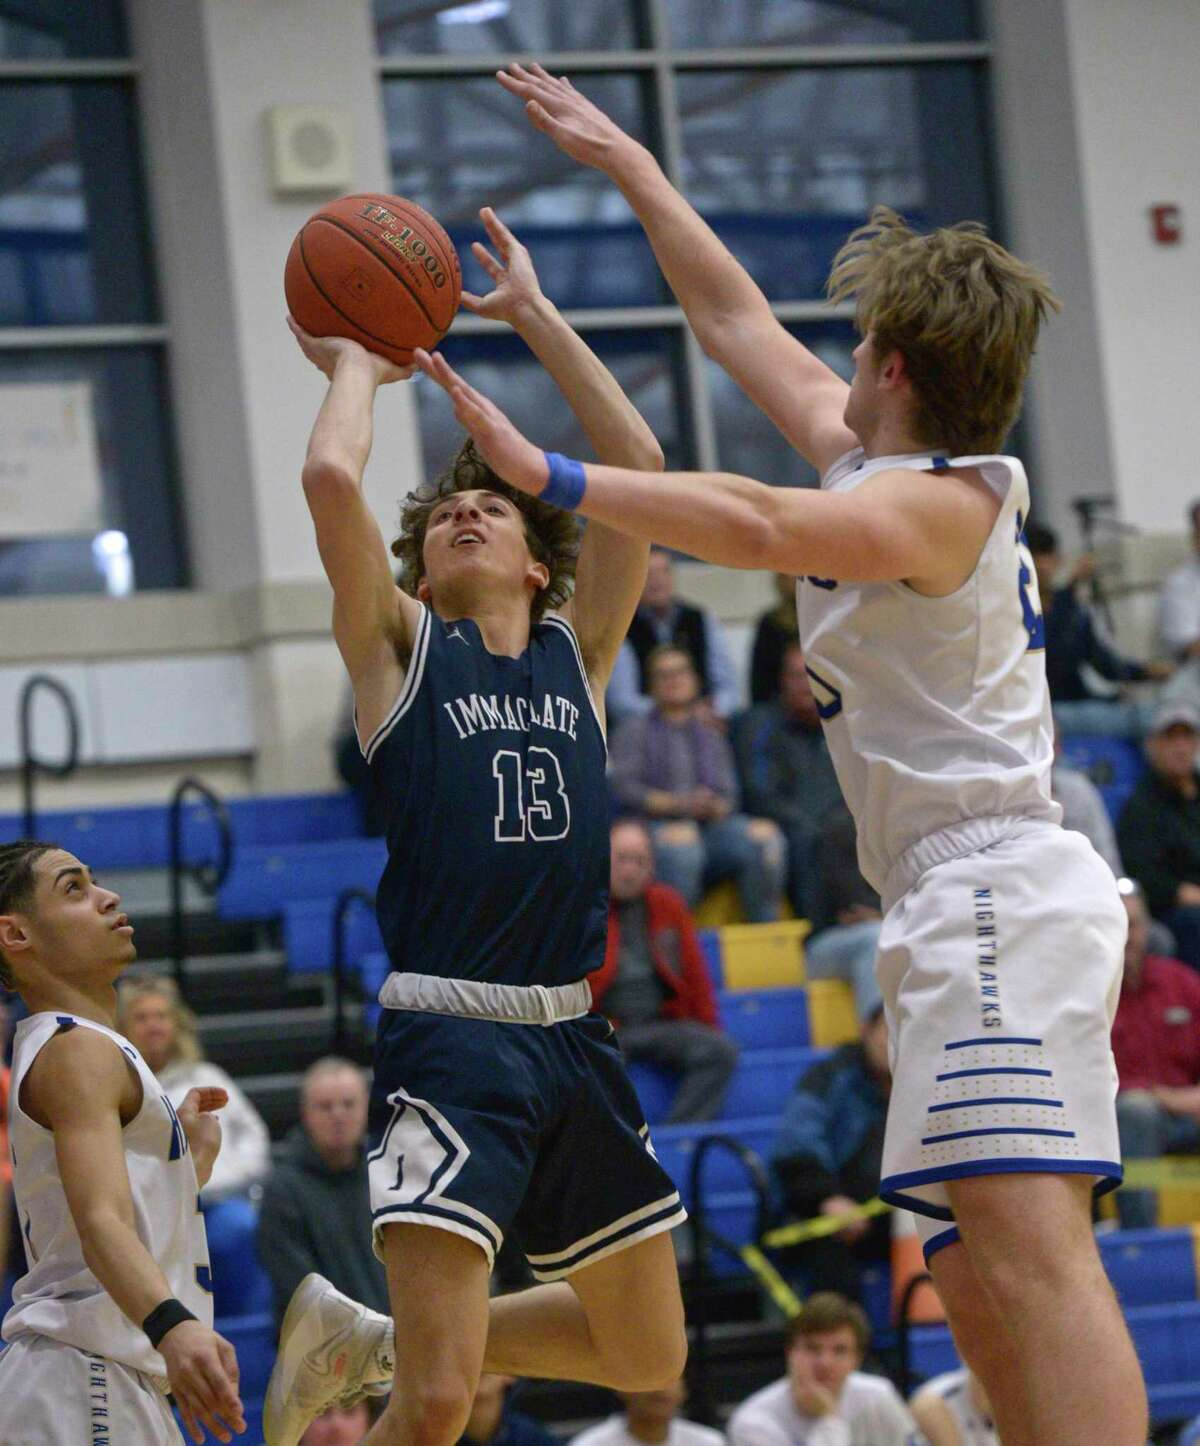 Immaculate's Sebastian Parenti (13) shoots over Newtown's Jack Mulligan (25) and Joseph McCray (3) during an SWC contest on Tuesday. No. 6 Immaculate defeated the Nighthawks, 54-53. For a complete recap and more photos, please visit GameTimeCT.com.